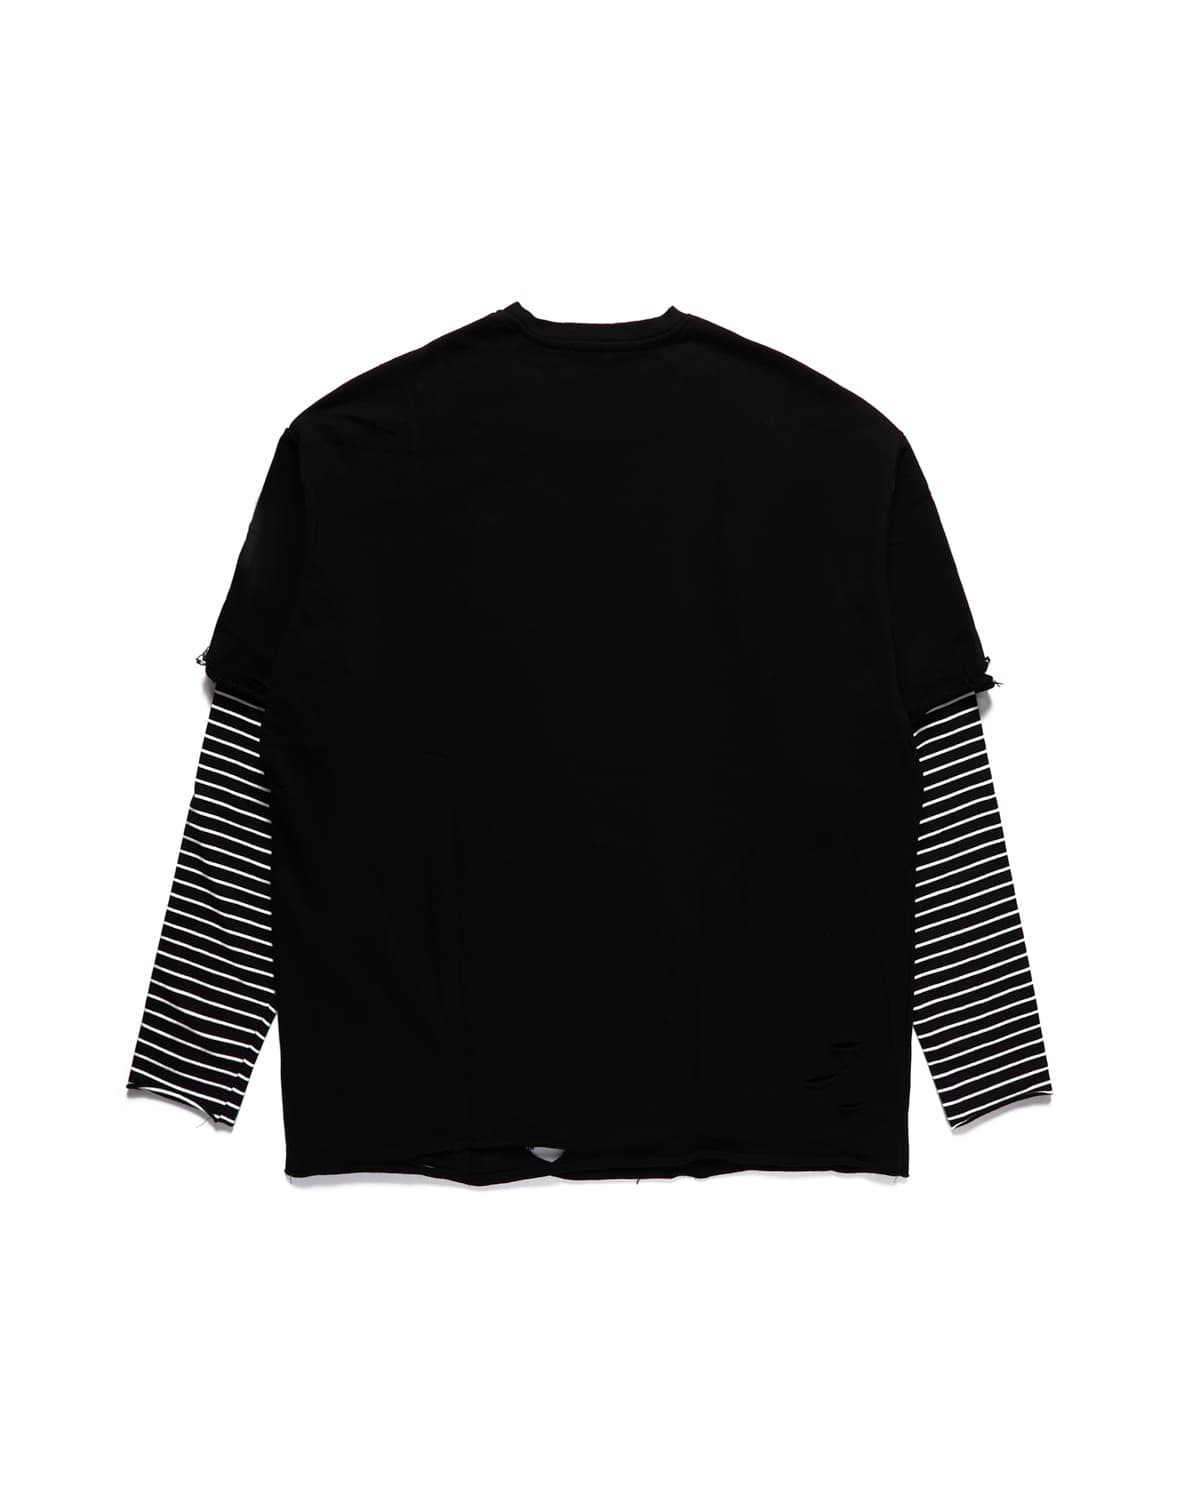 'Mood' Long Sleeve T-Shirt